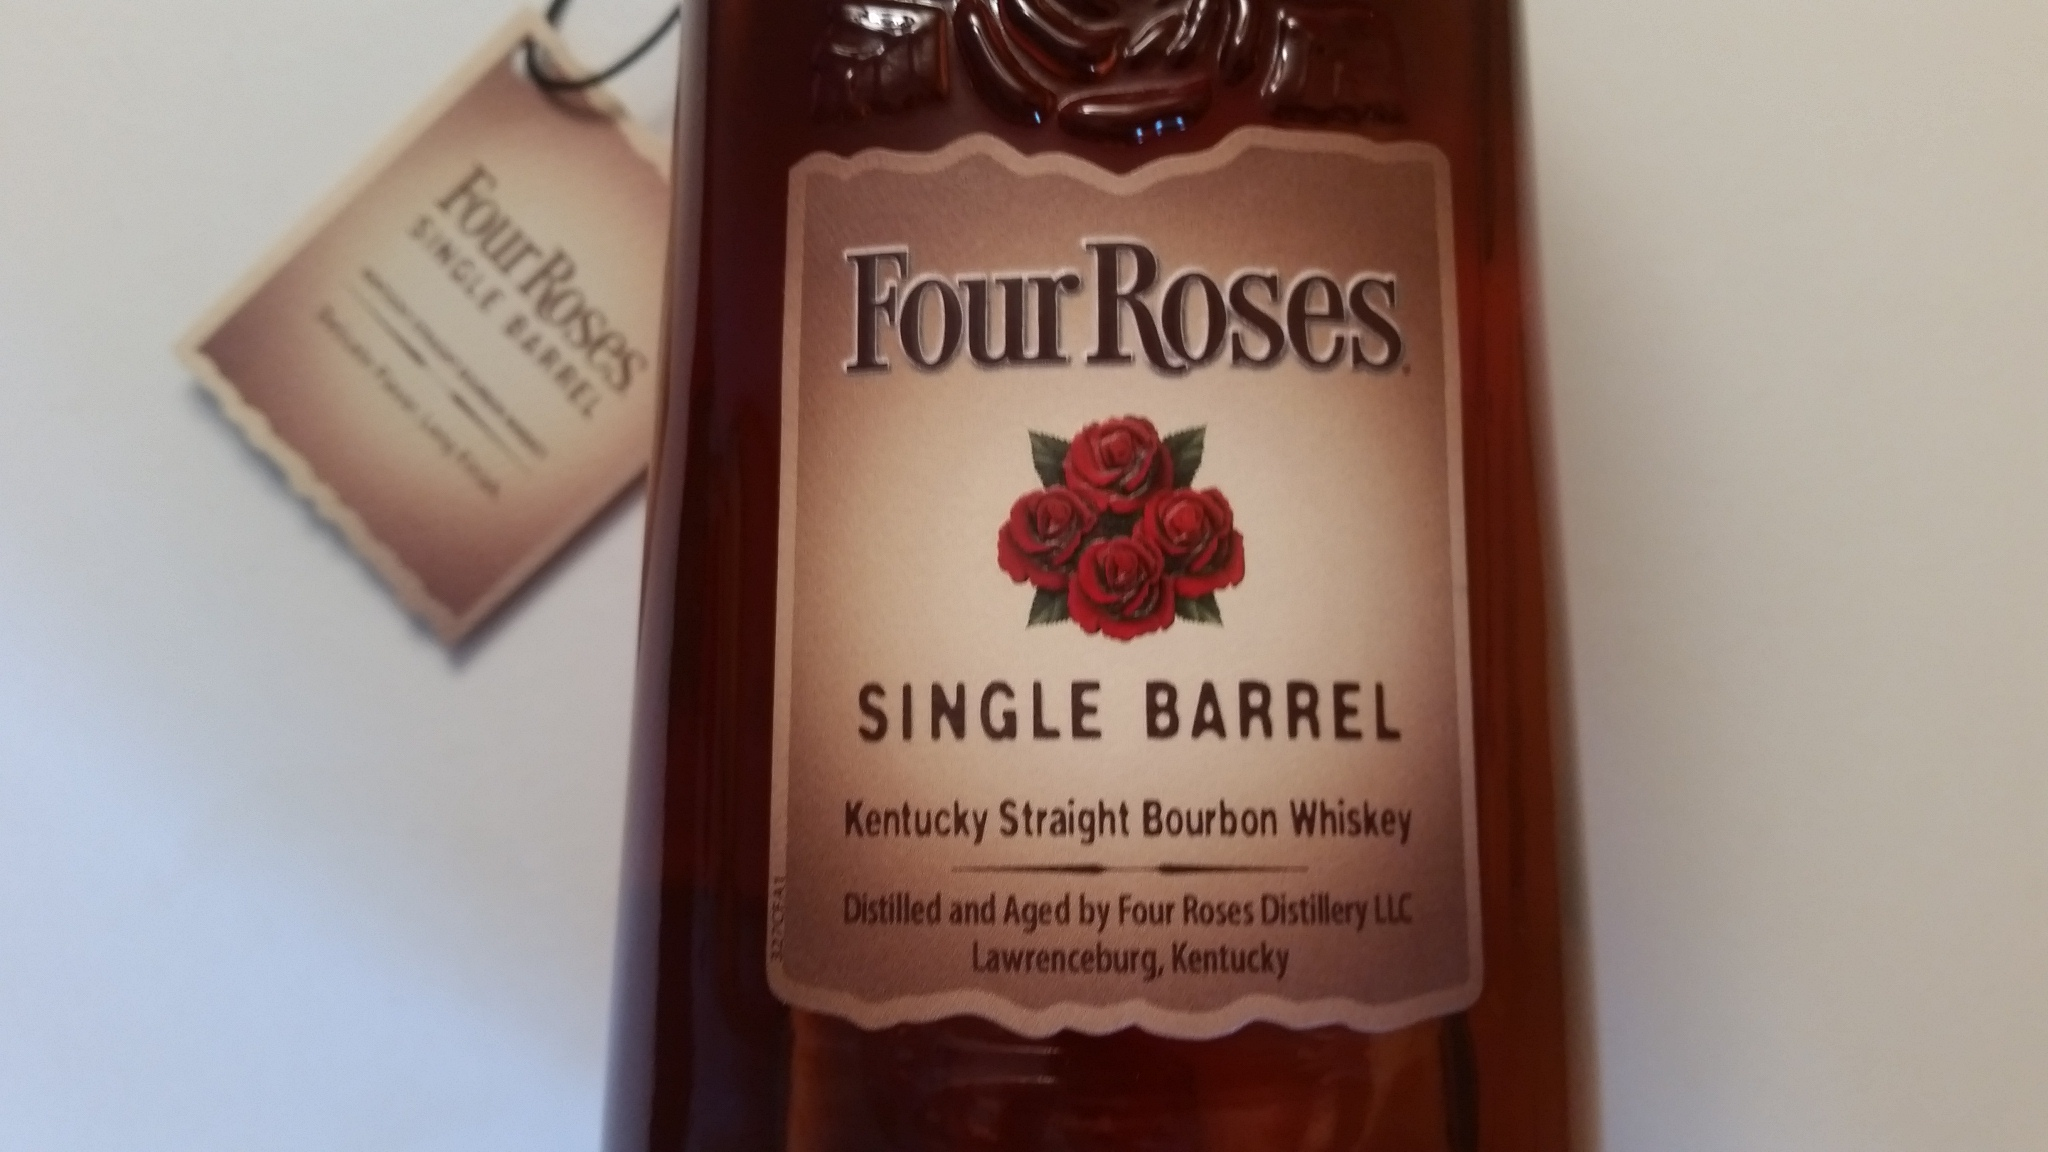 The Four Roses Single Barrel bottle label